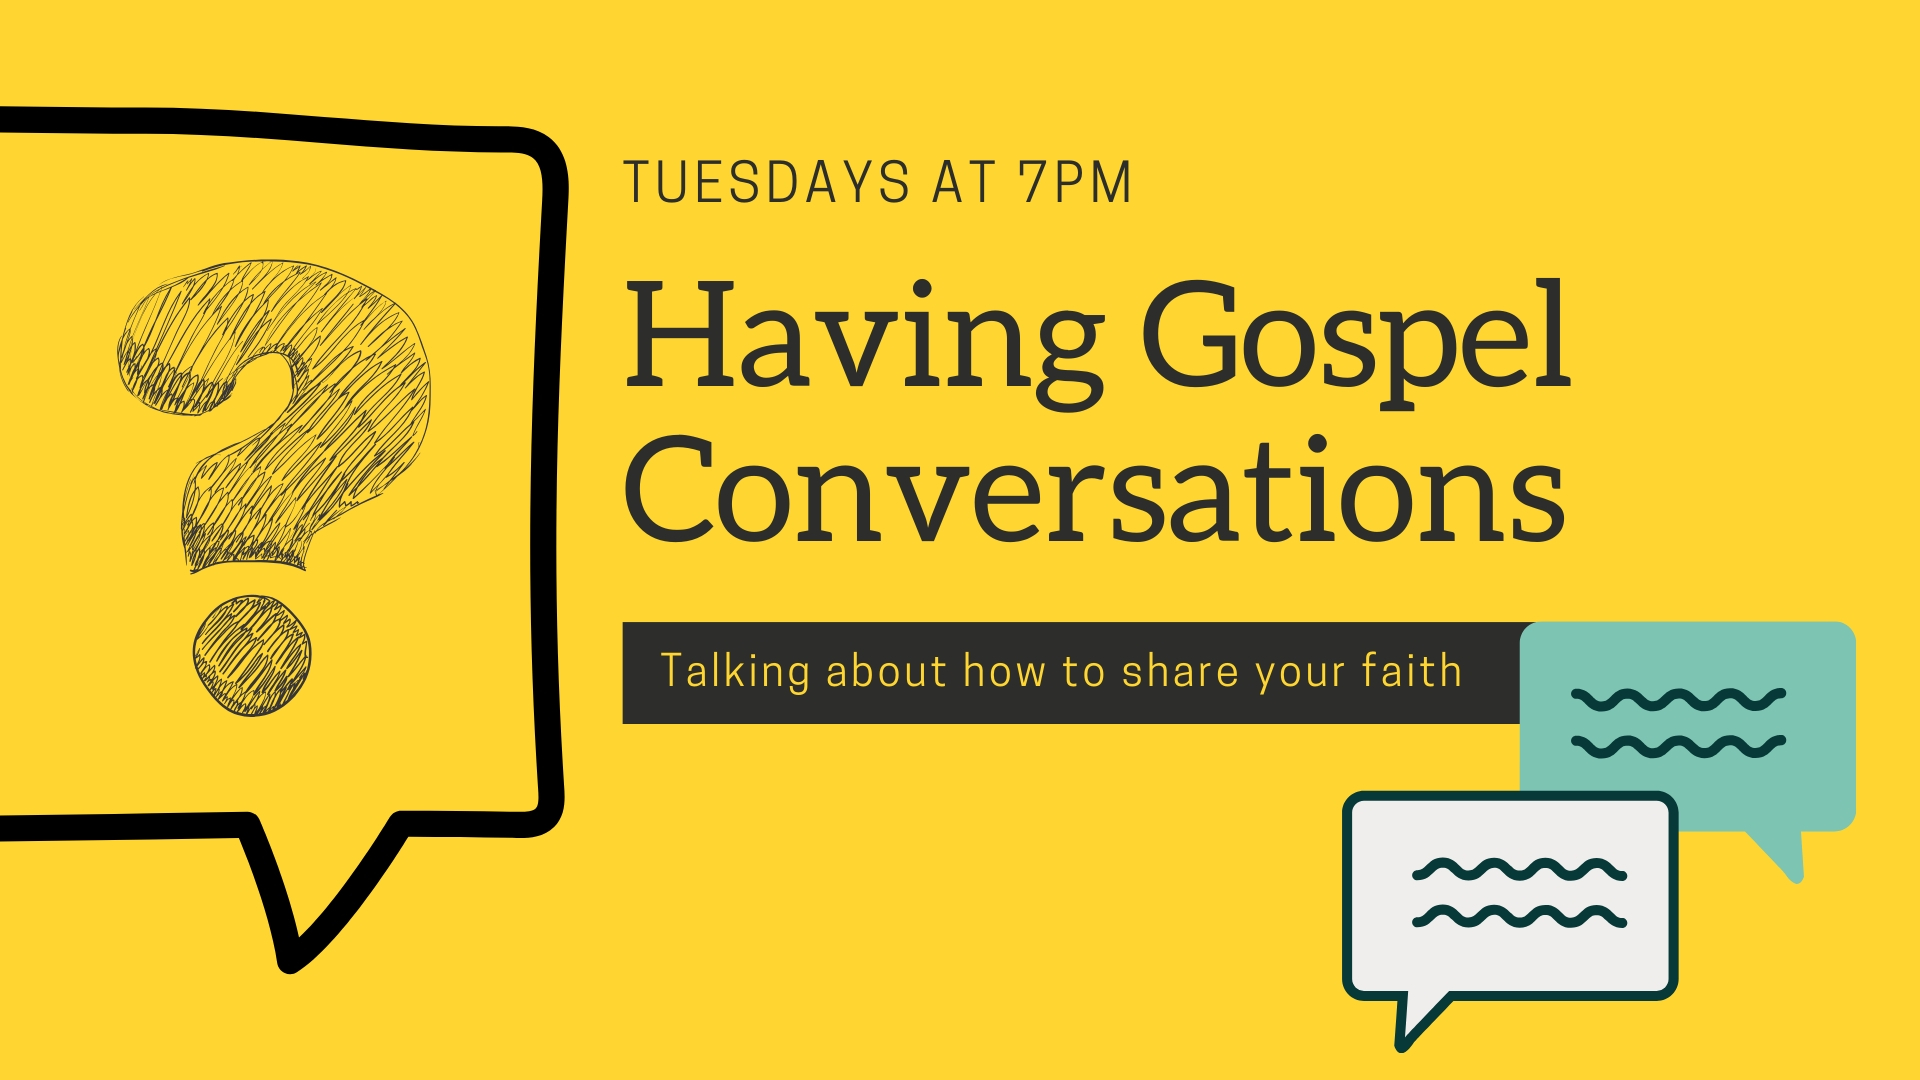 Having Gospel Conversations - Week 10 Image